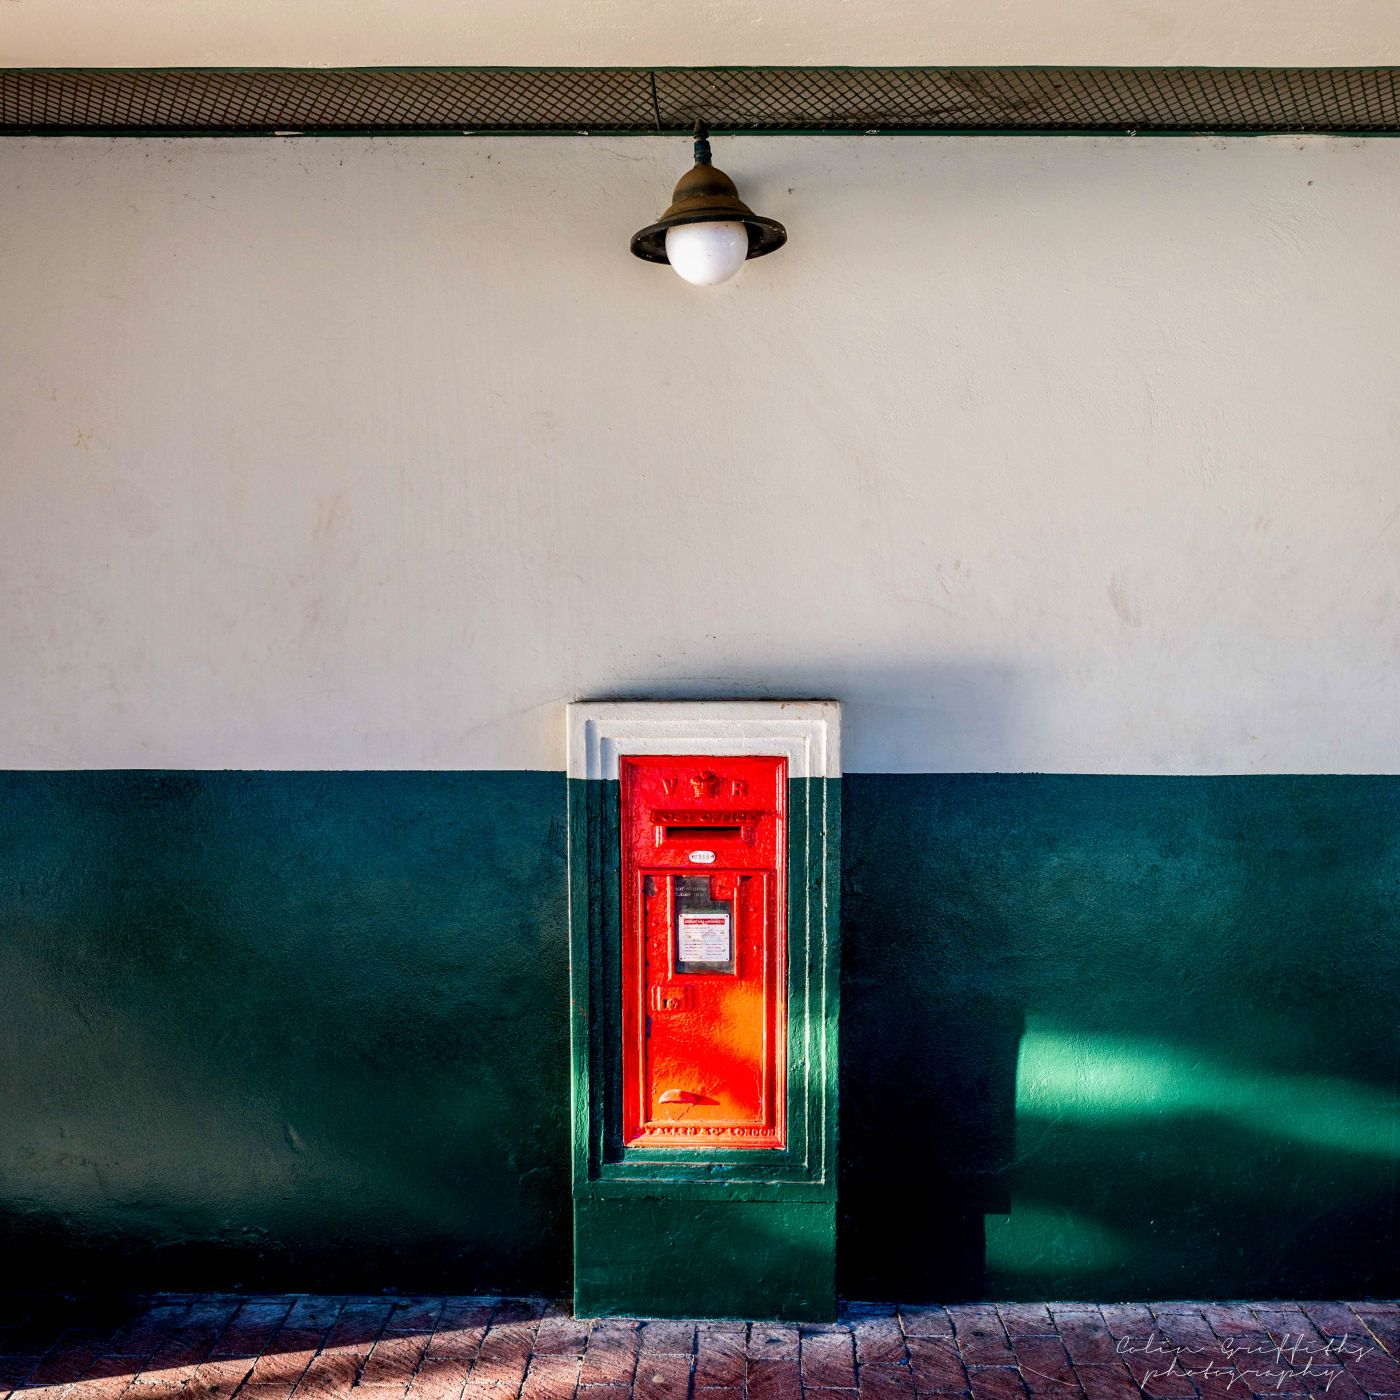 Montagu letter box, South Africa